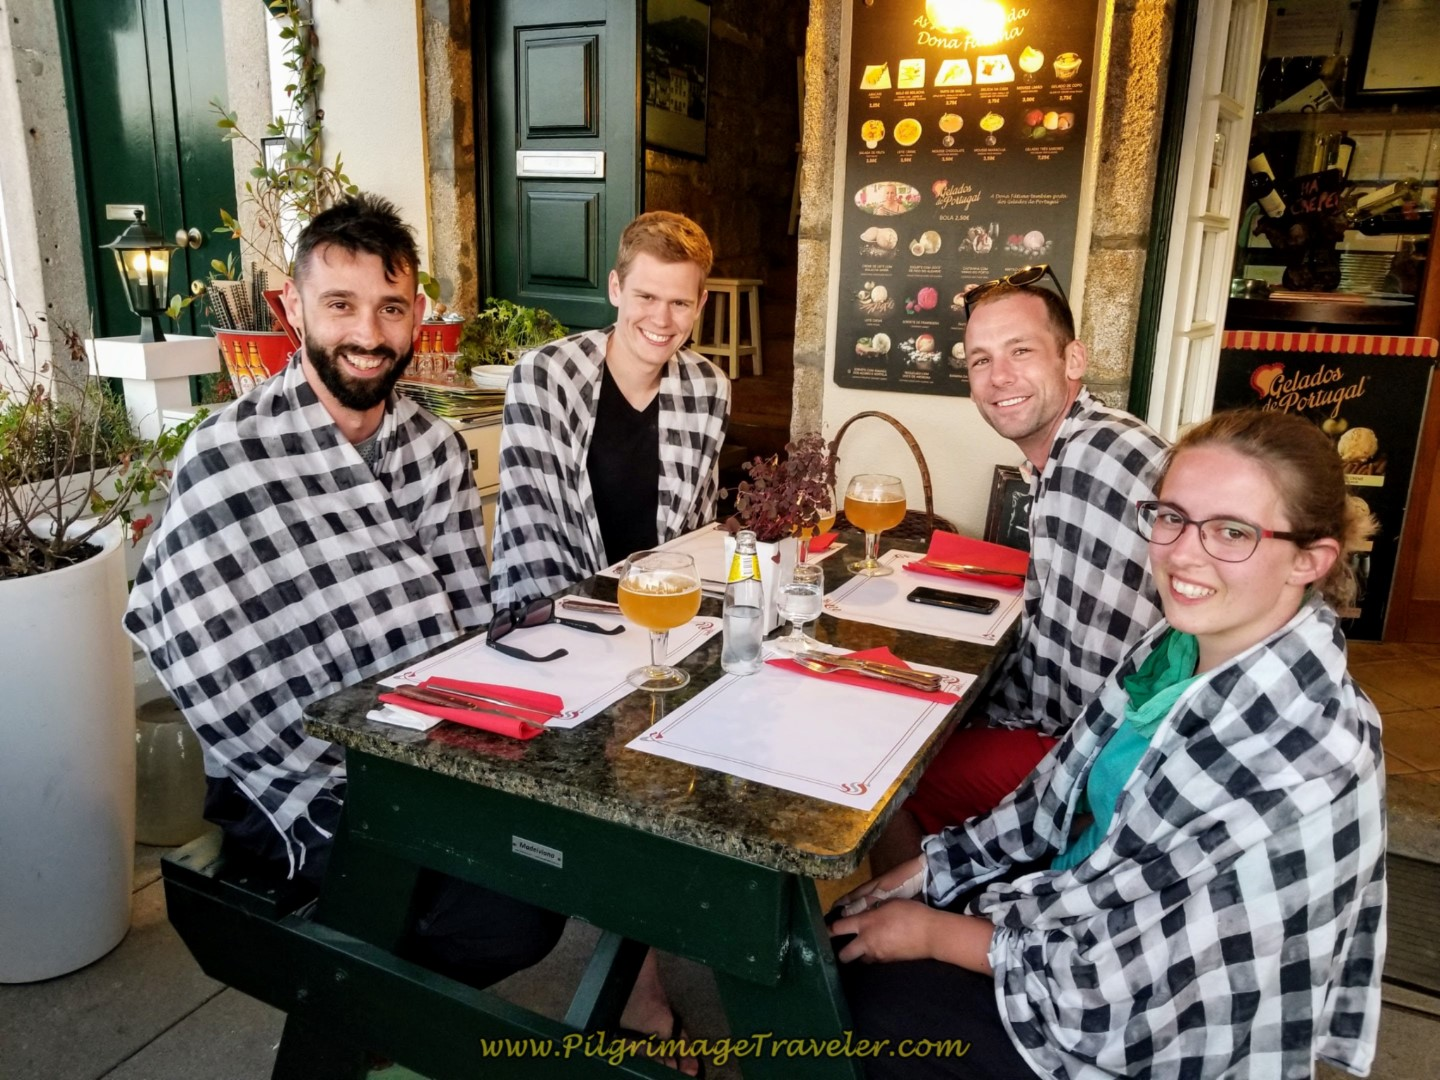 Borut, Magnus, Matt and Magdalena at the Pizzeria by the Medieval Bridge in Ponte de Lima, Portugal